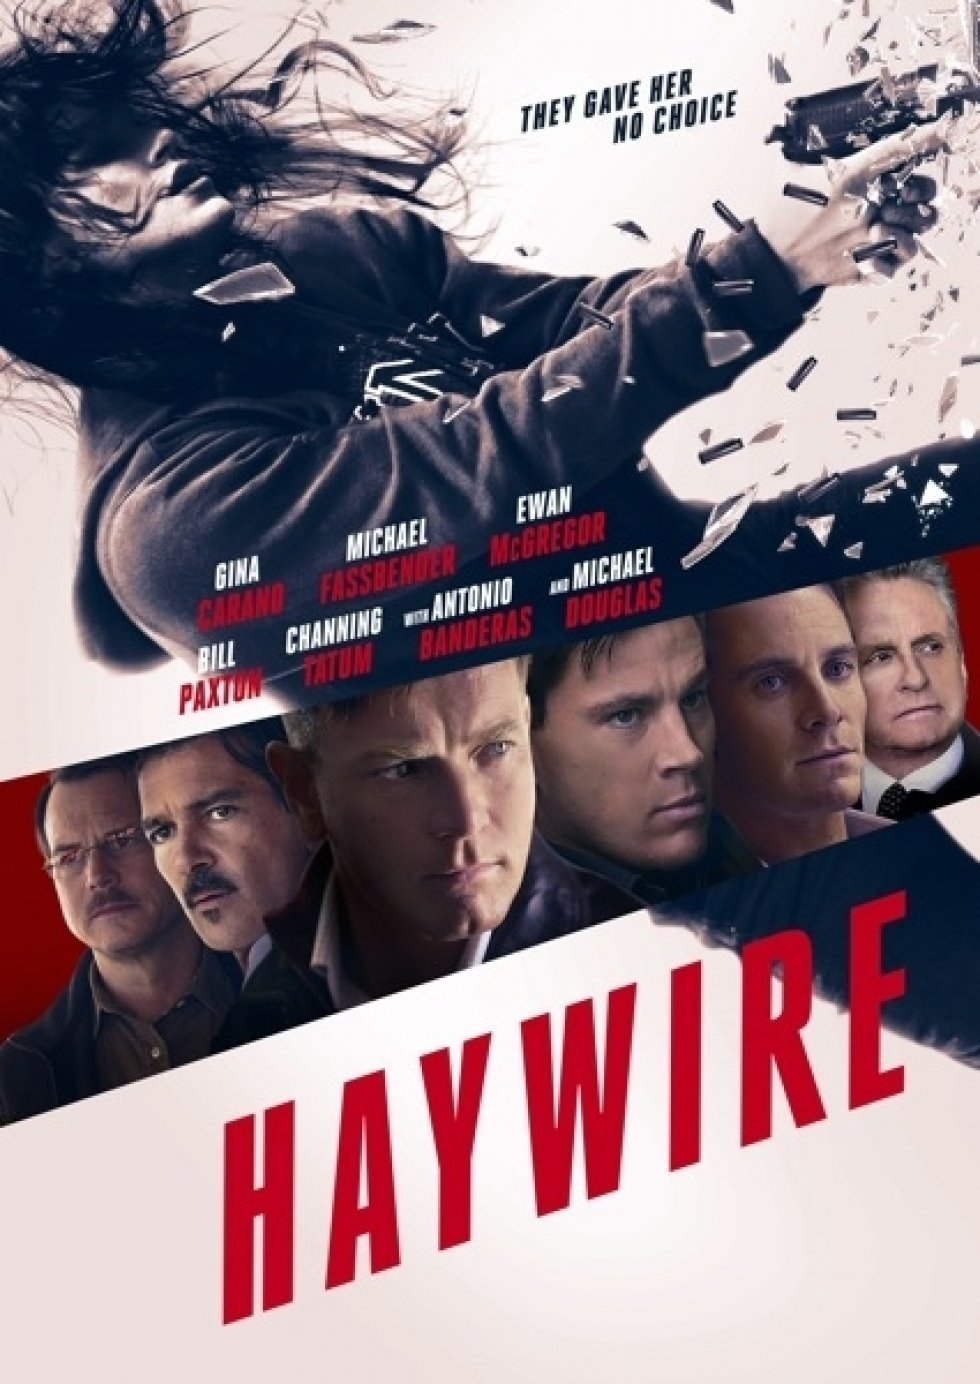 Foto: Nordisk Film A/S - Haywire